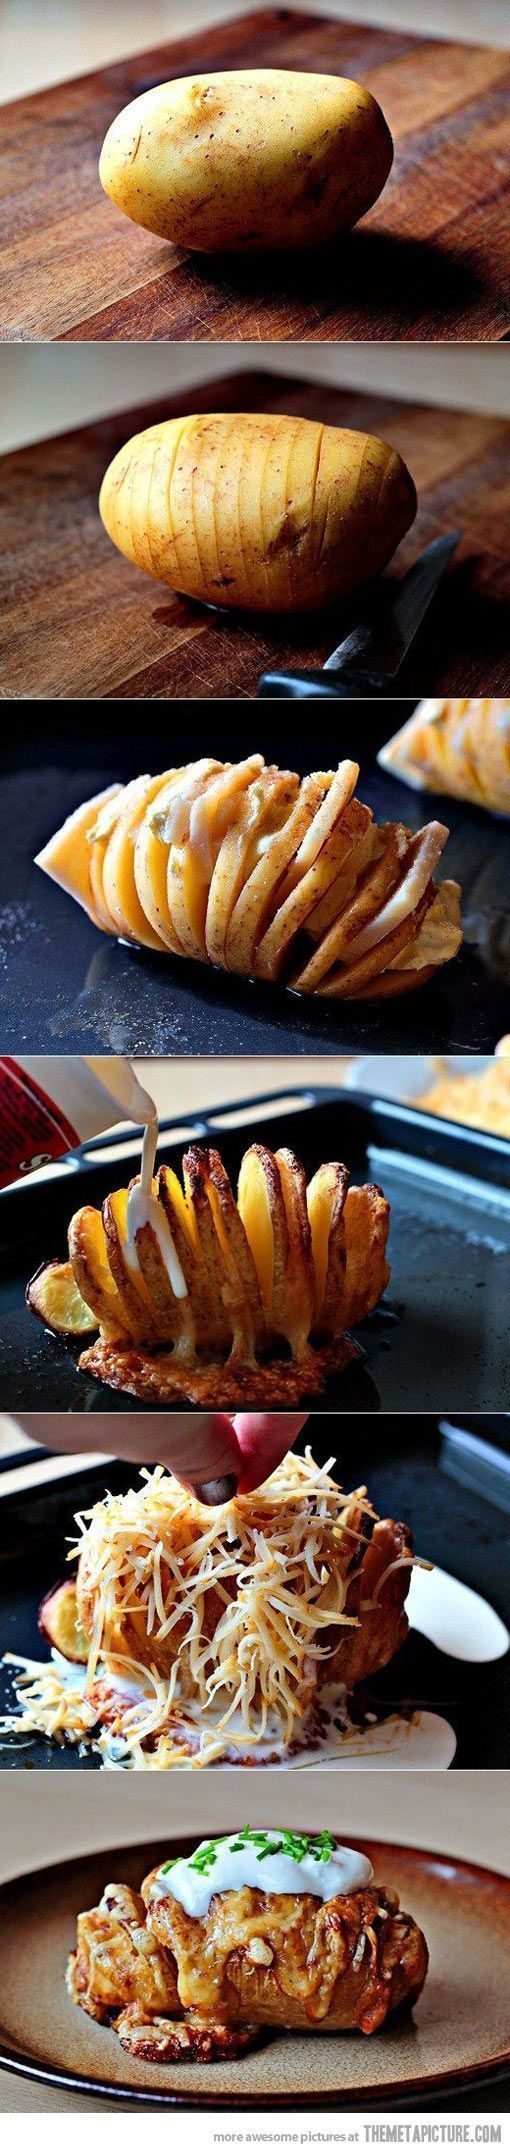 There is nothing-simpler thing than baking a potato, I mean, you just throw it in the oven and bake it. But if you want the perfect baked potato it will take a little bit more effort. First of all slice the potato almost all the way through and tuck butte